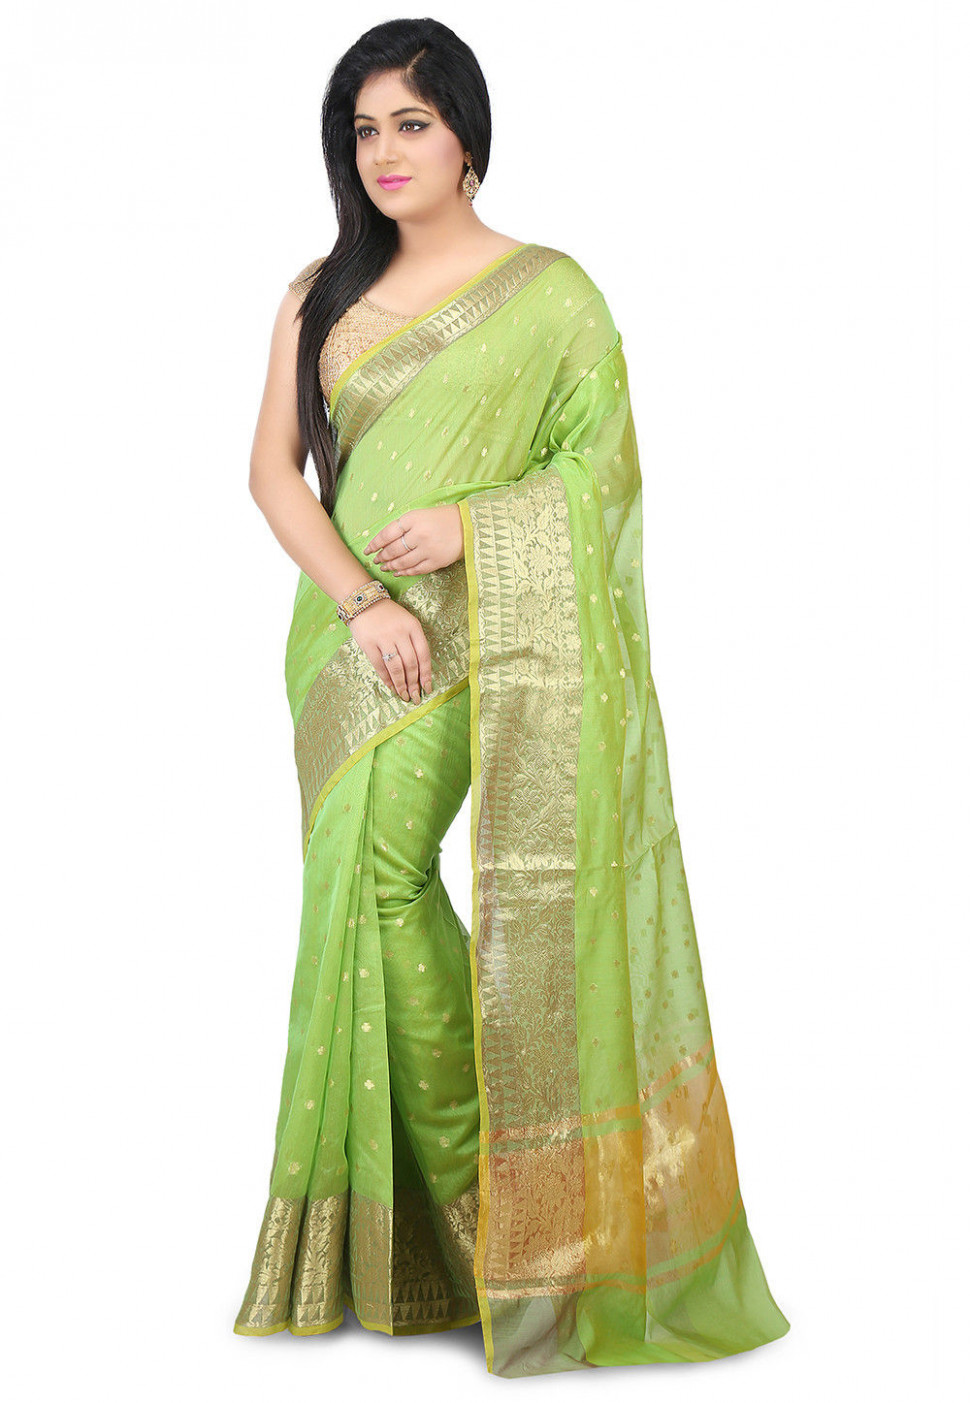 Woven Chanderi Silk Saree in Light Green : SWZ83